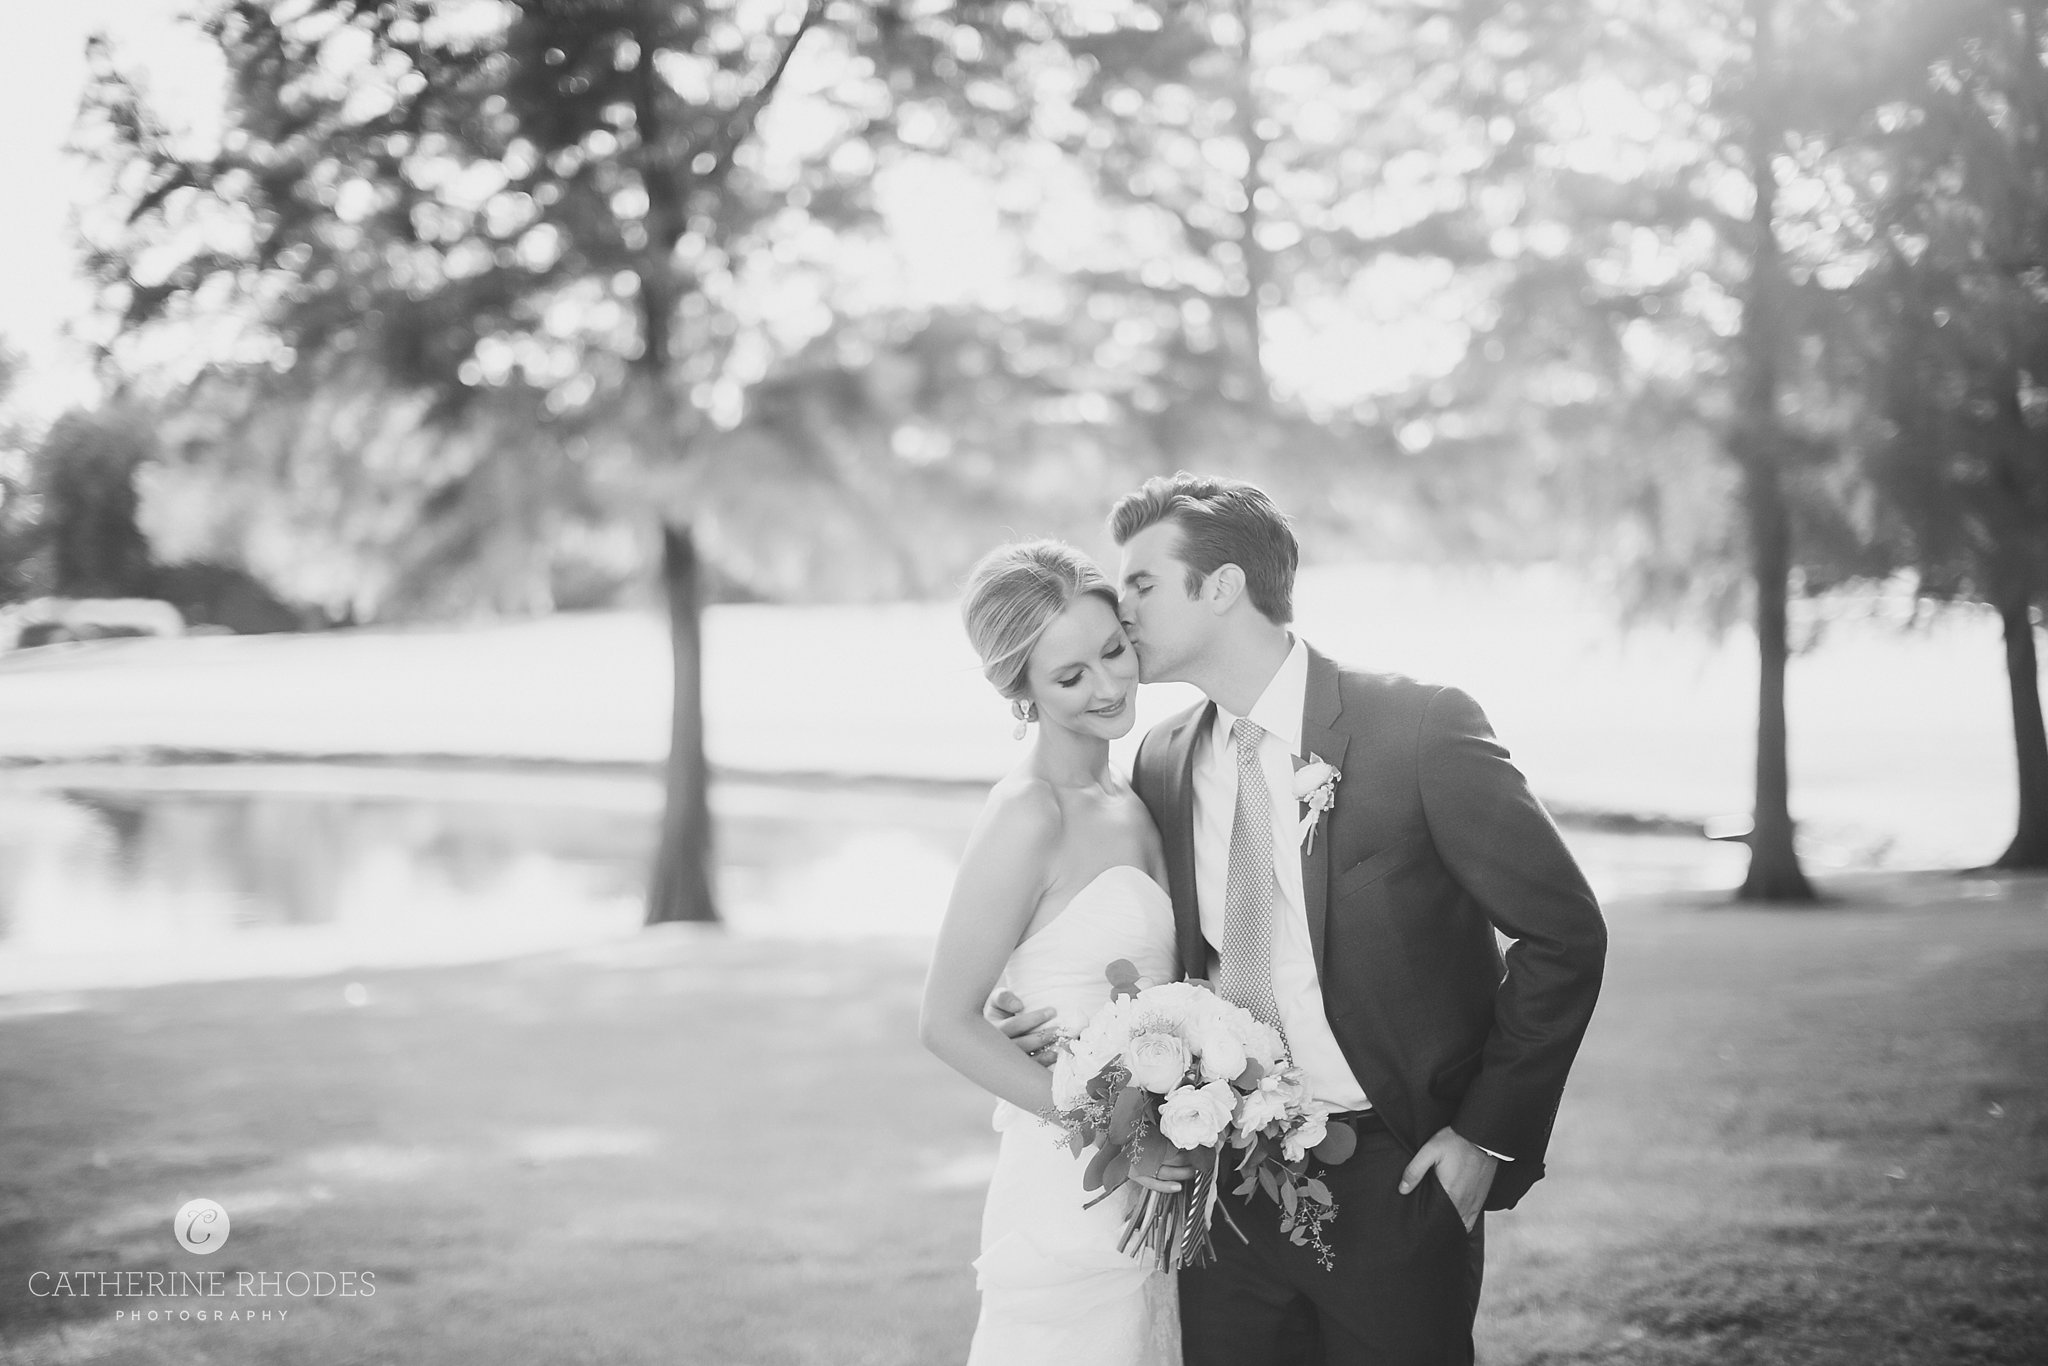 CountryClubofMissouriWedding_ColumbiaMissouriWeddingPhotographer_SaraKevin_CatherineRhodesPhotography-2337-Edit(1).jpg